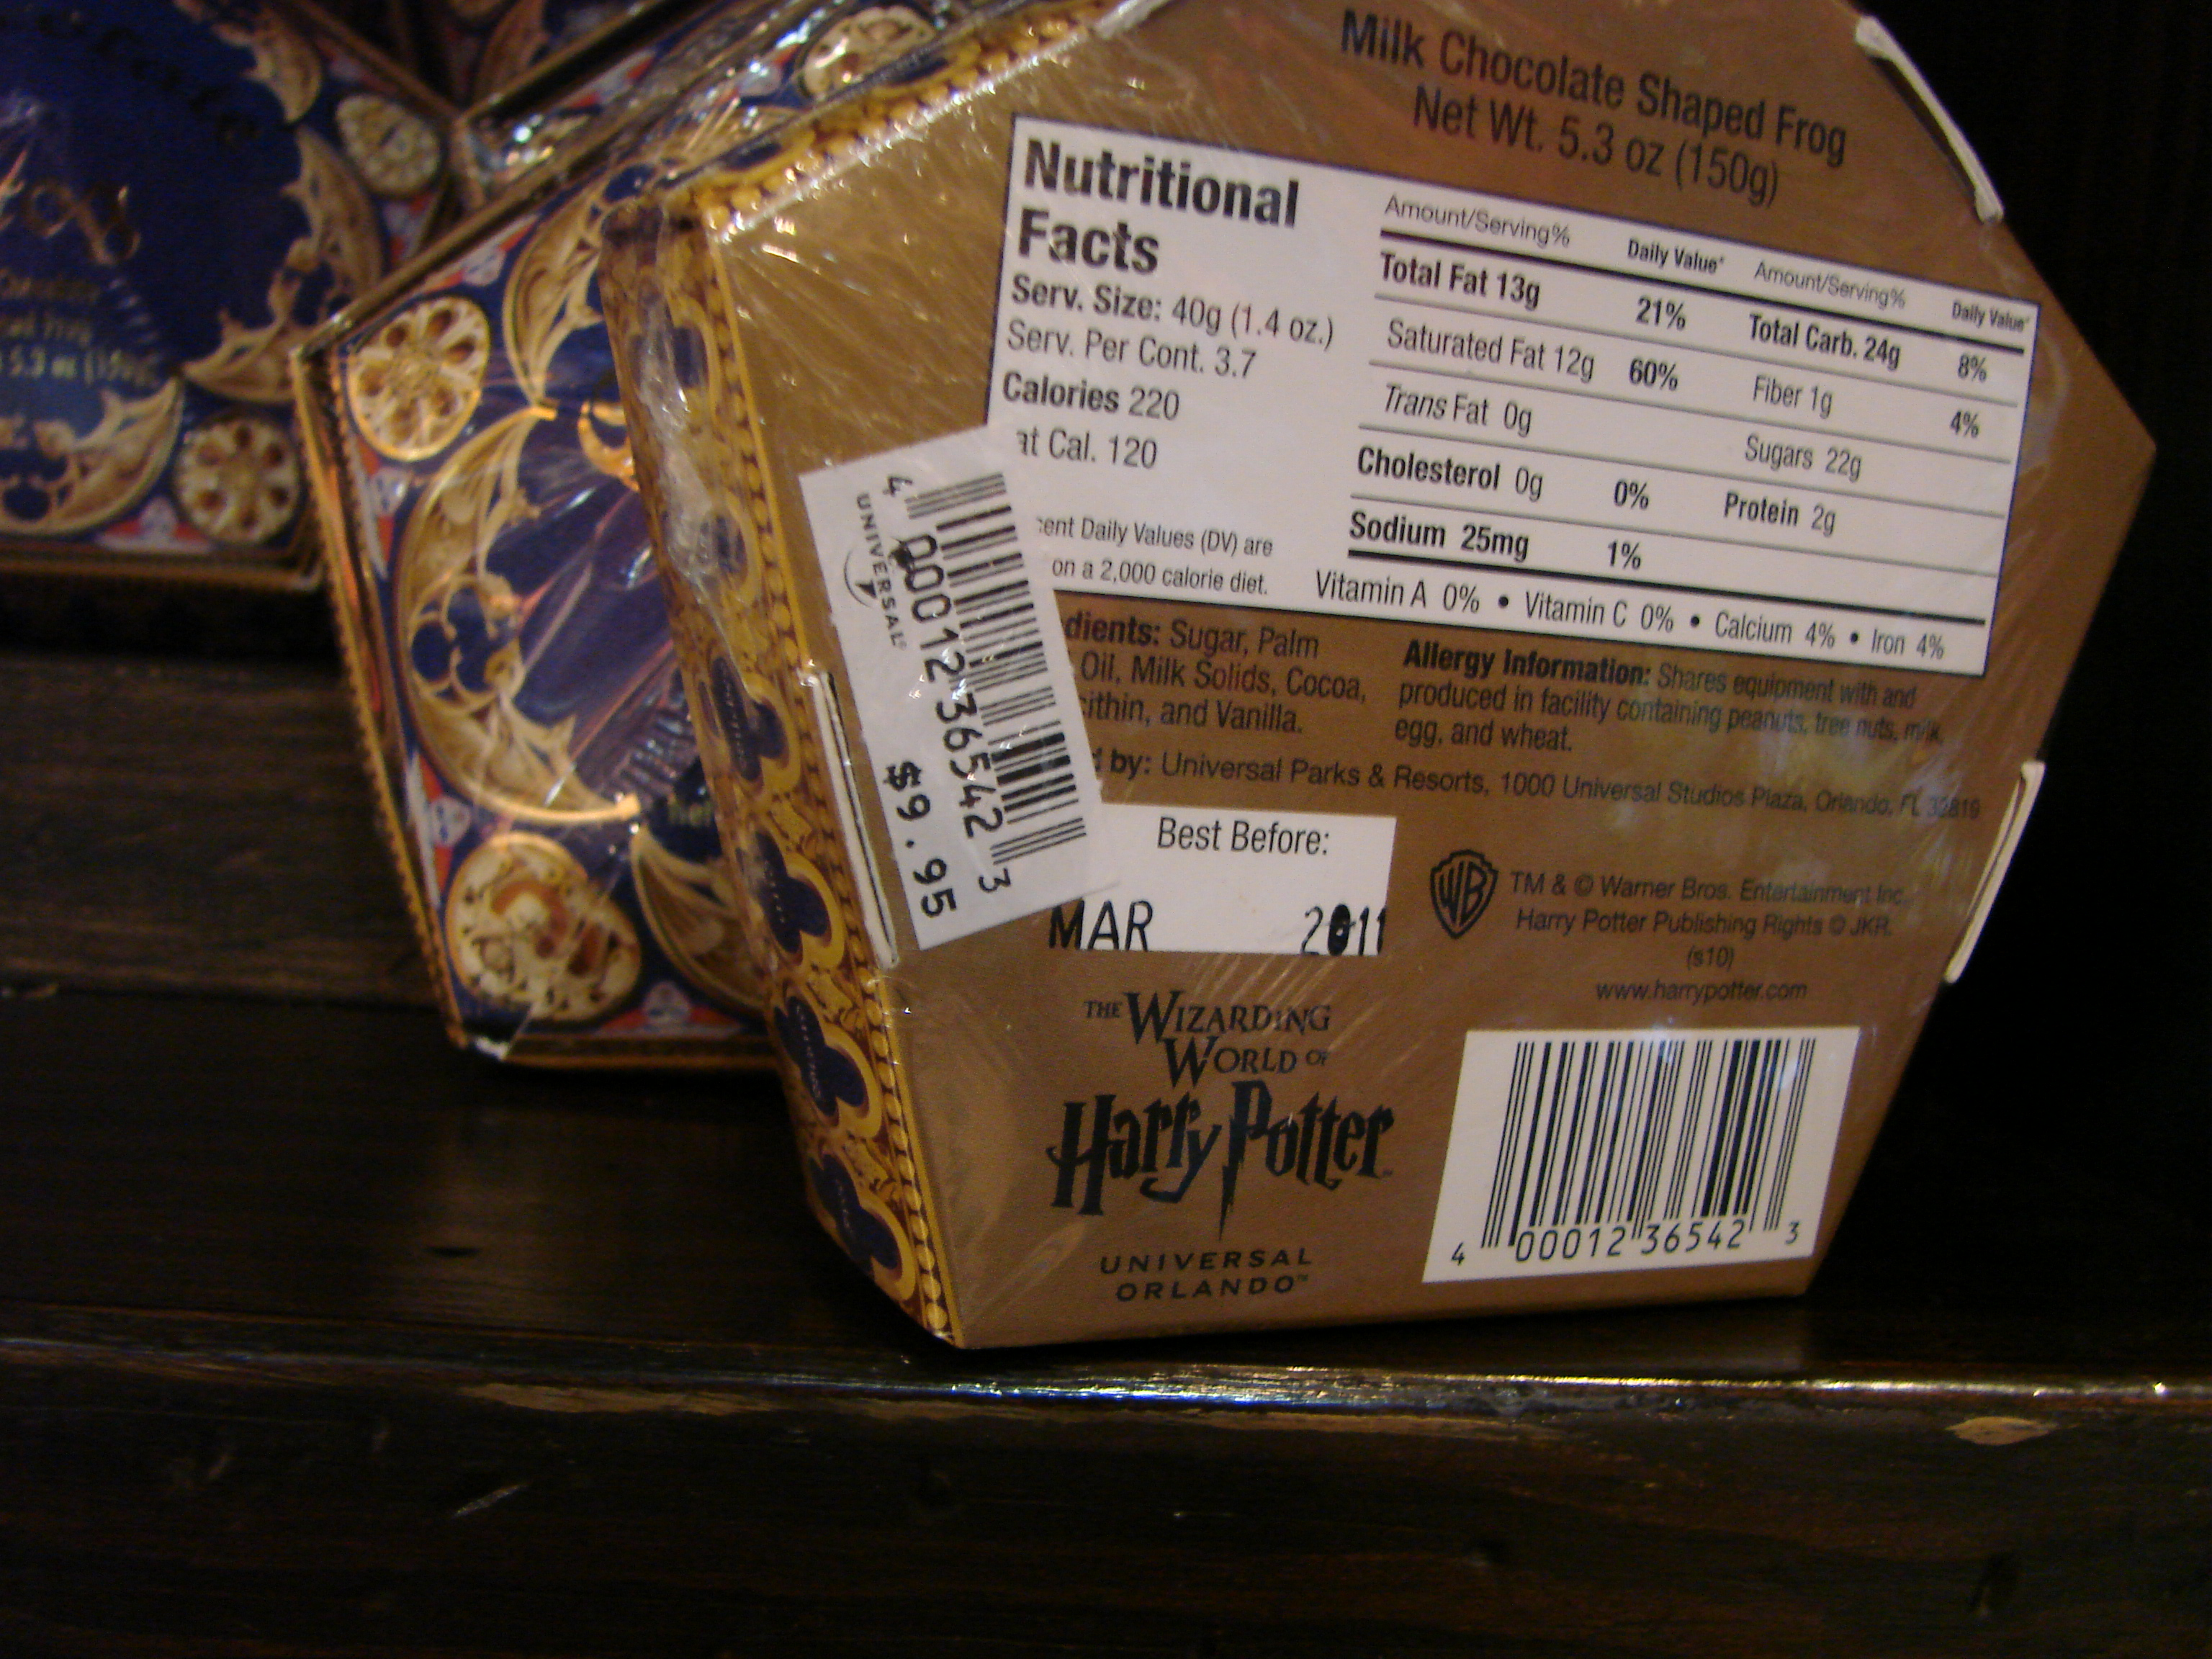 Harry Potter Park Chocolate Frog Review